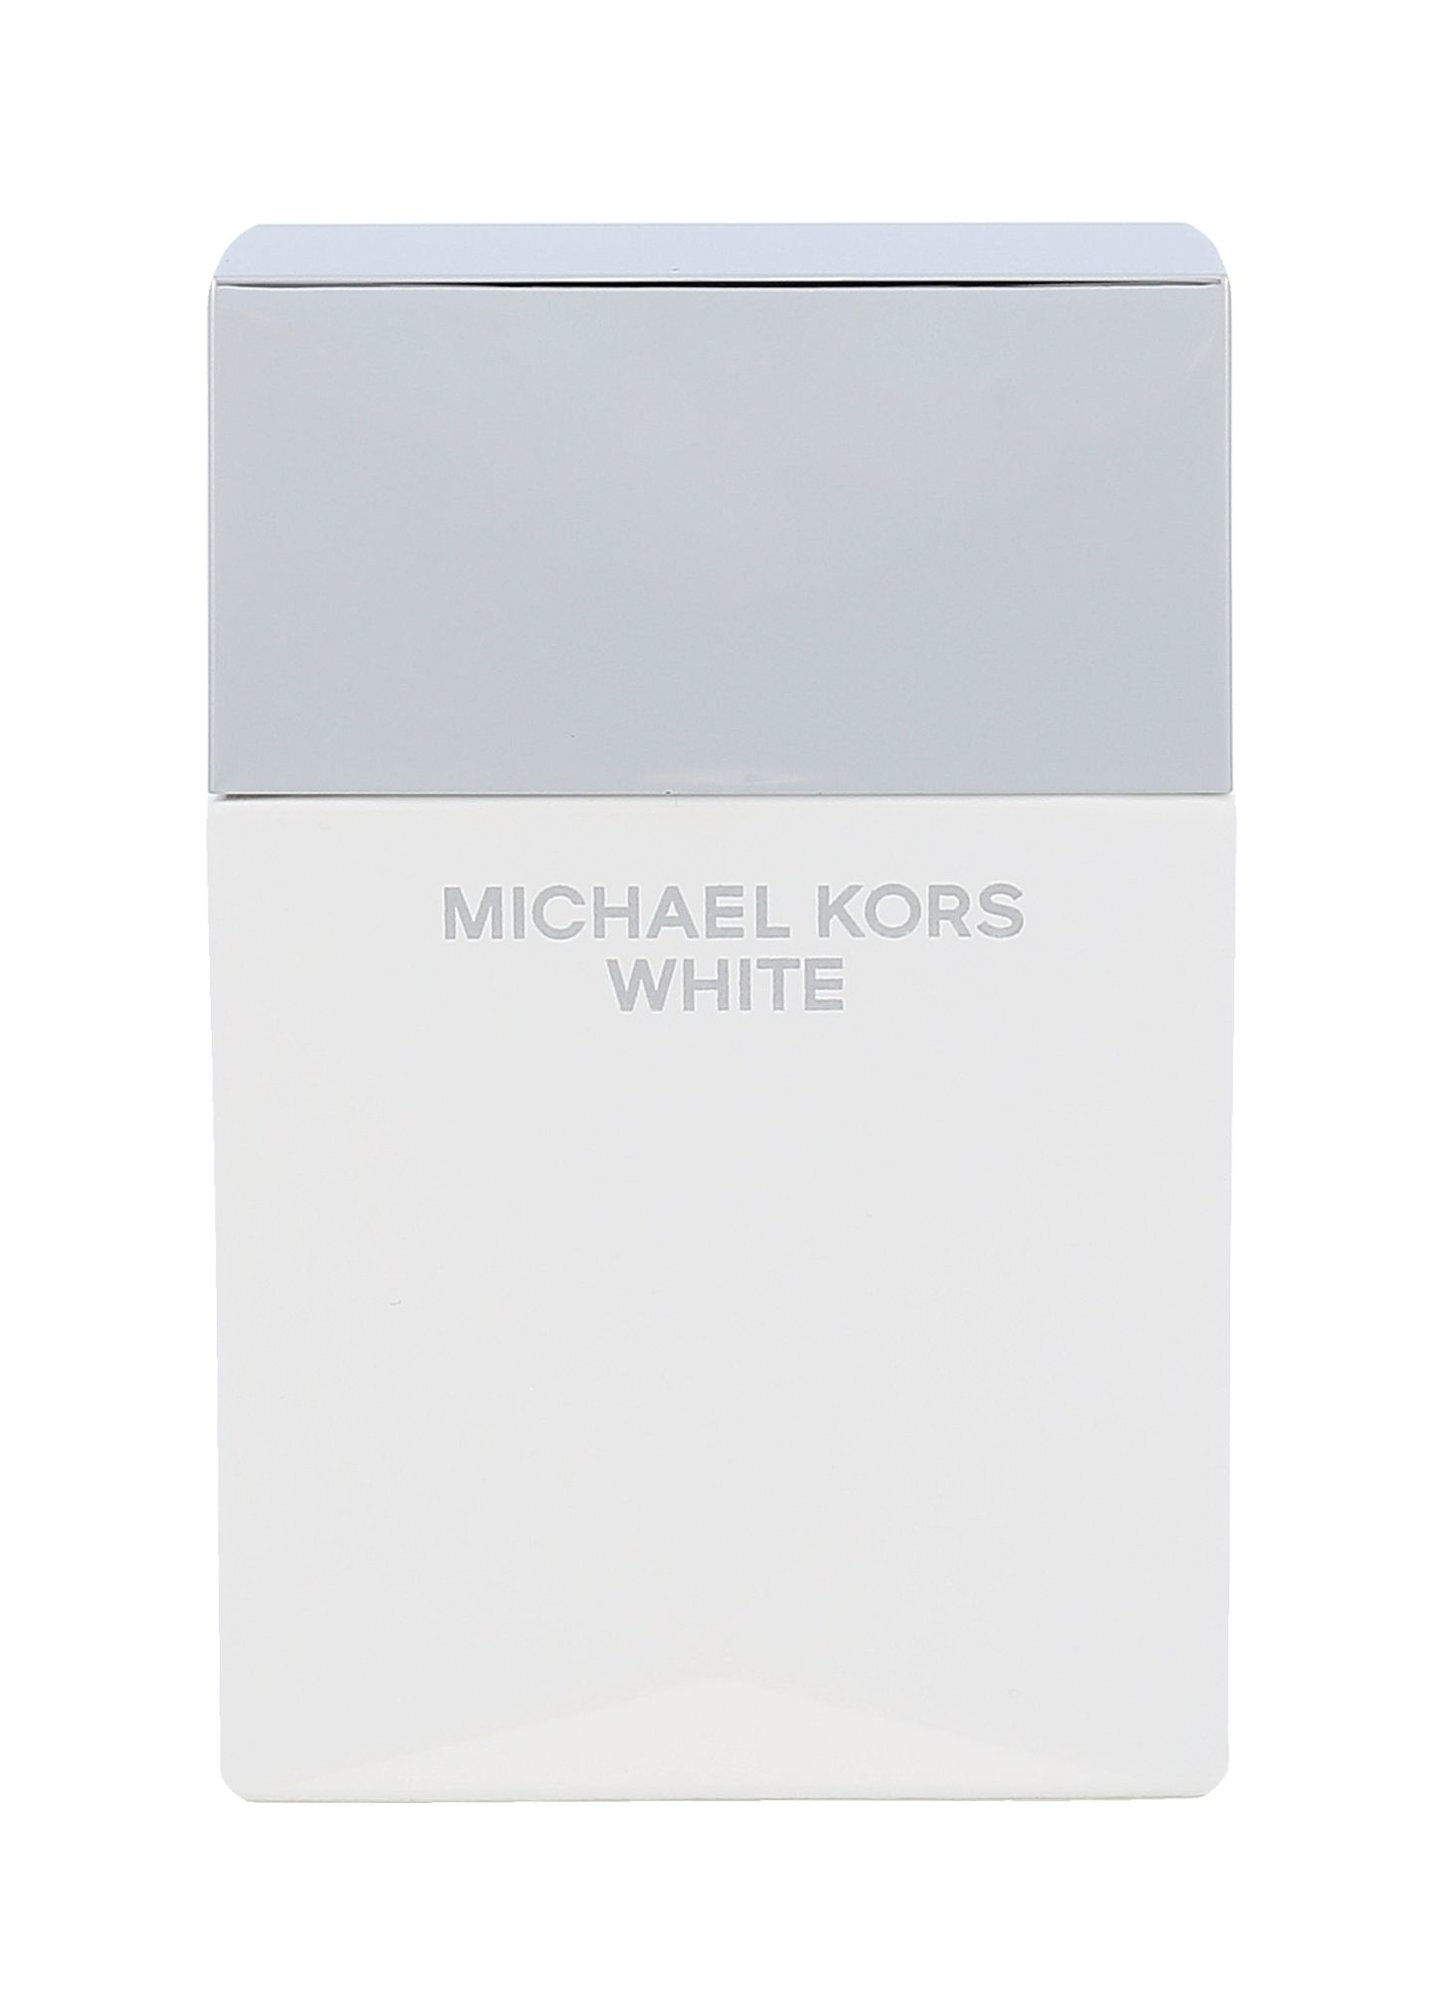 Michael Kors Michael Kors White EDP 50ml